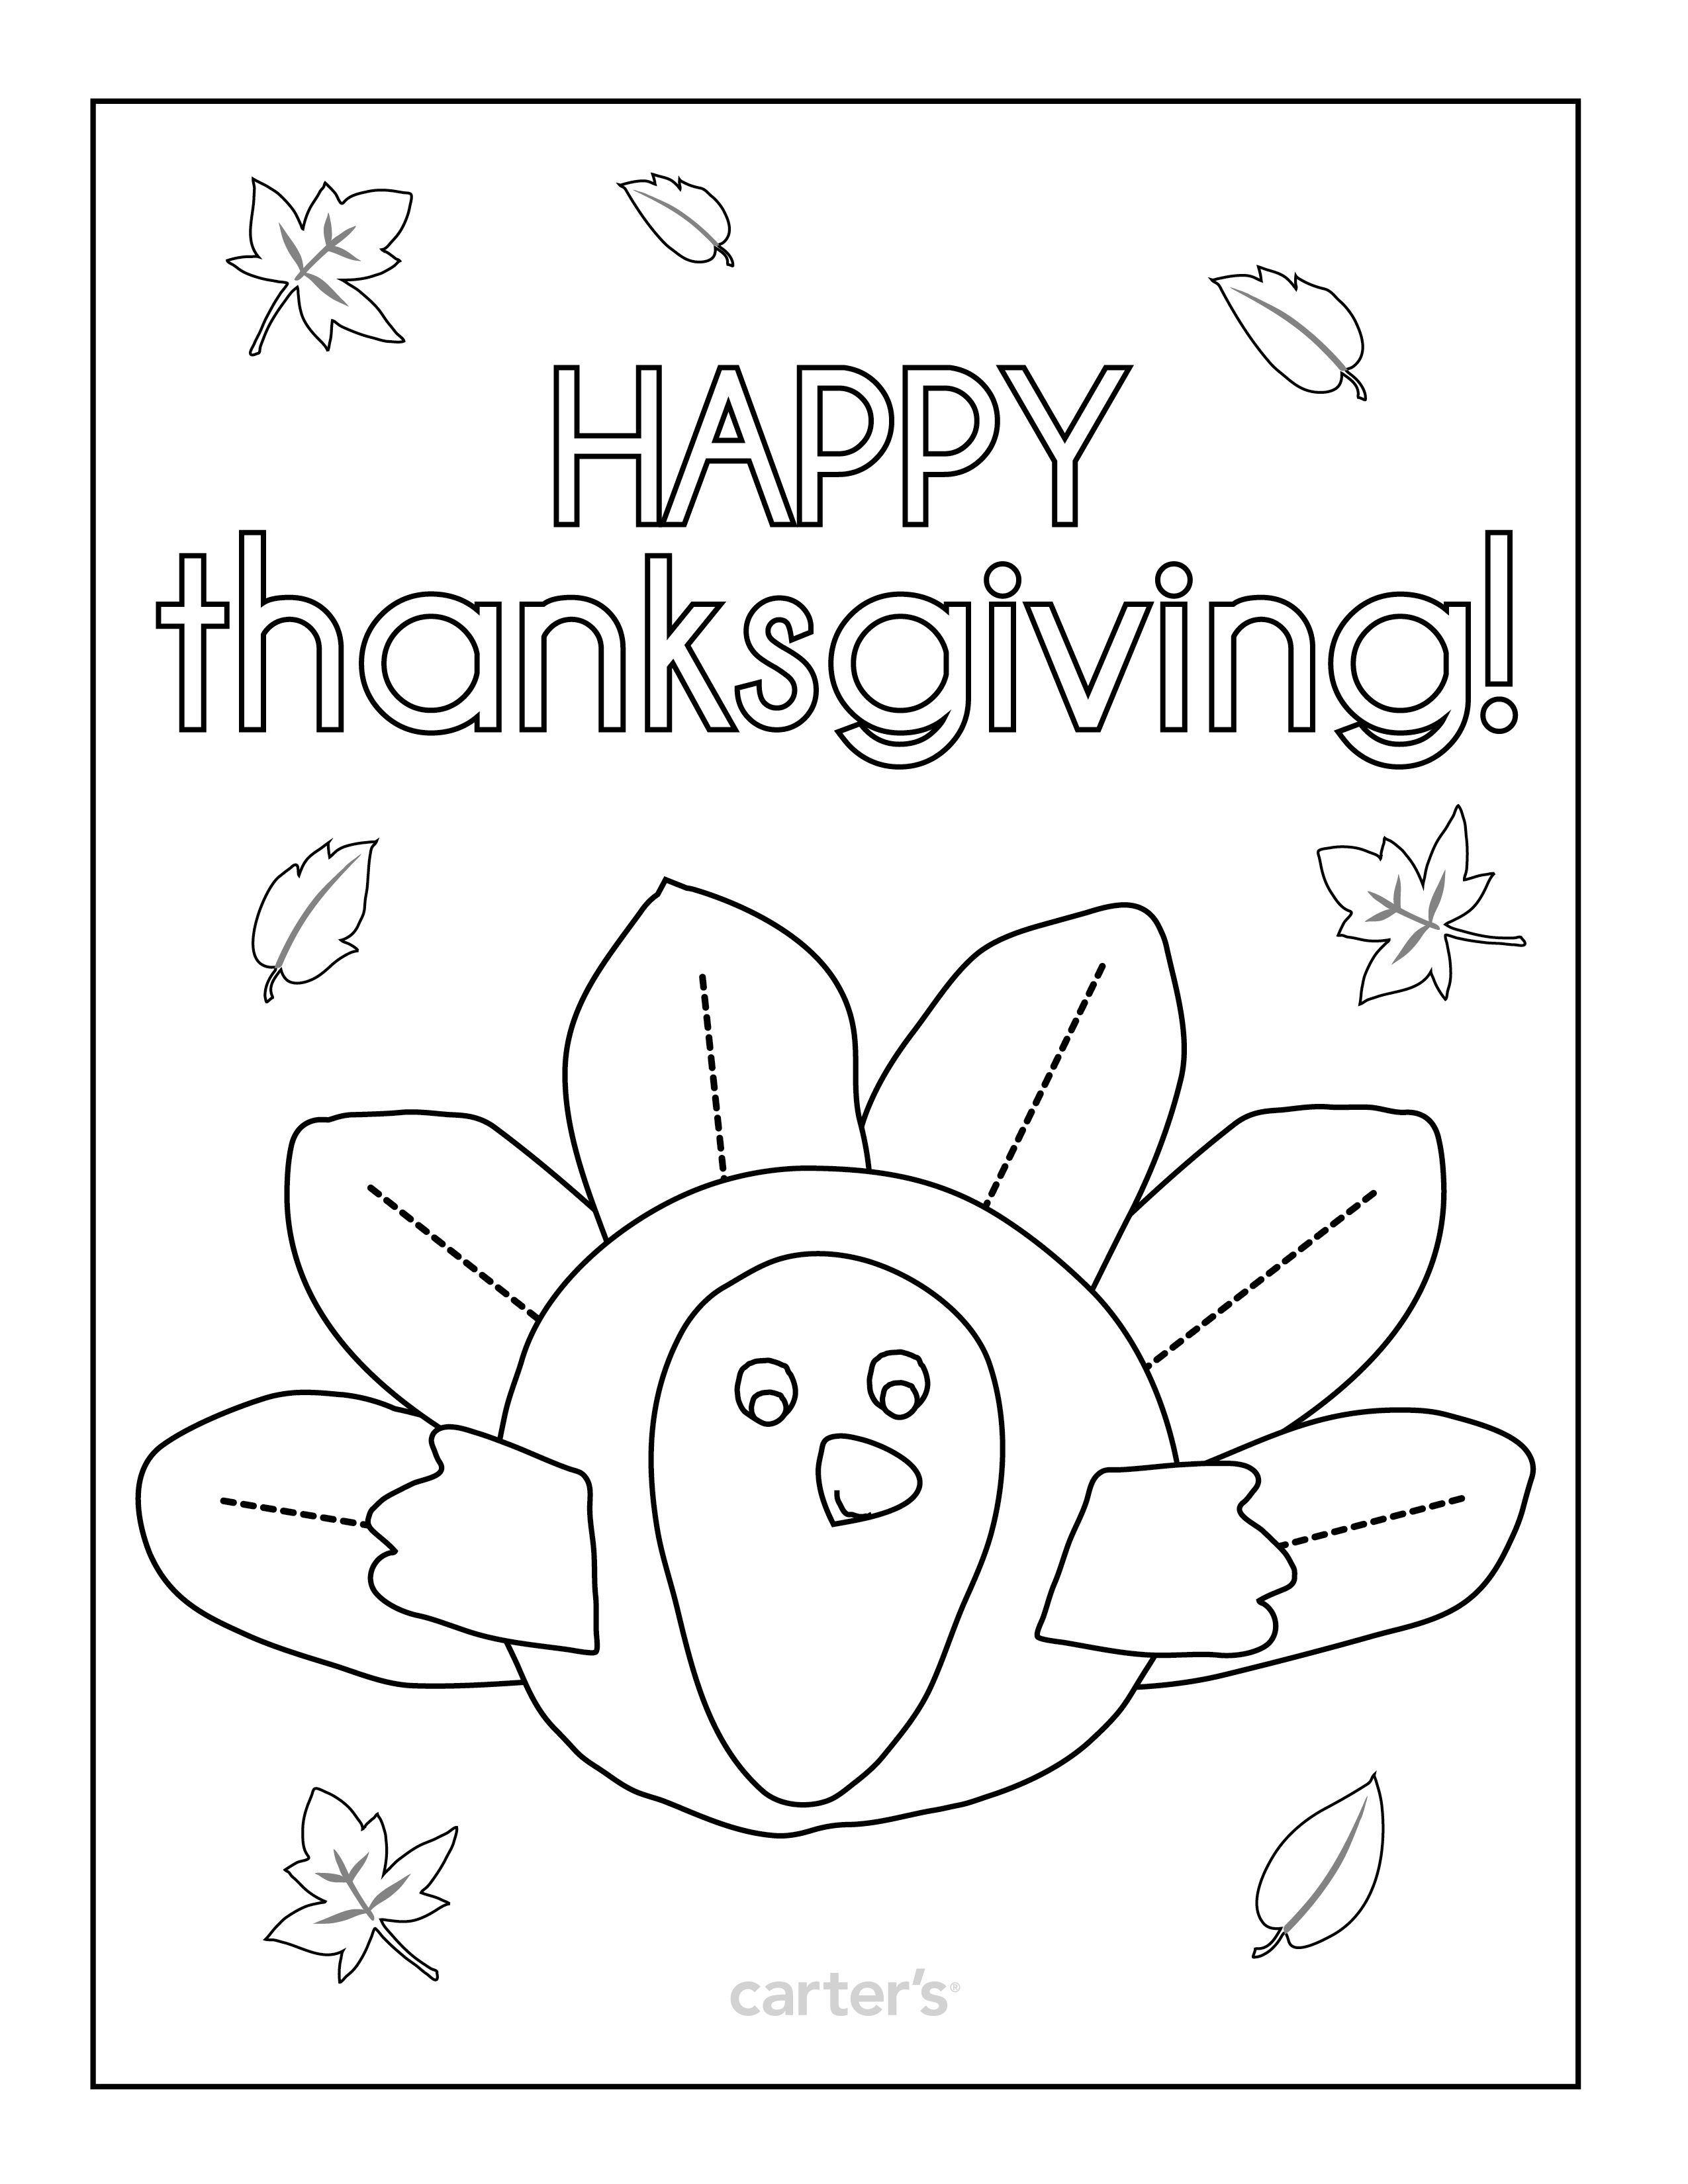 Print this coloring page for your kiddos! Happy Thanksgiving ...